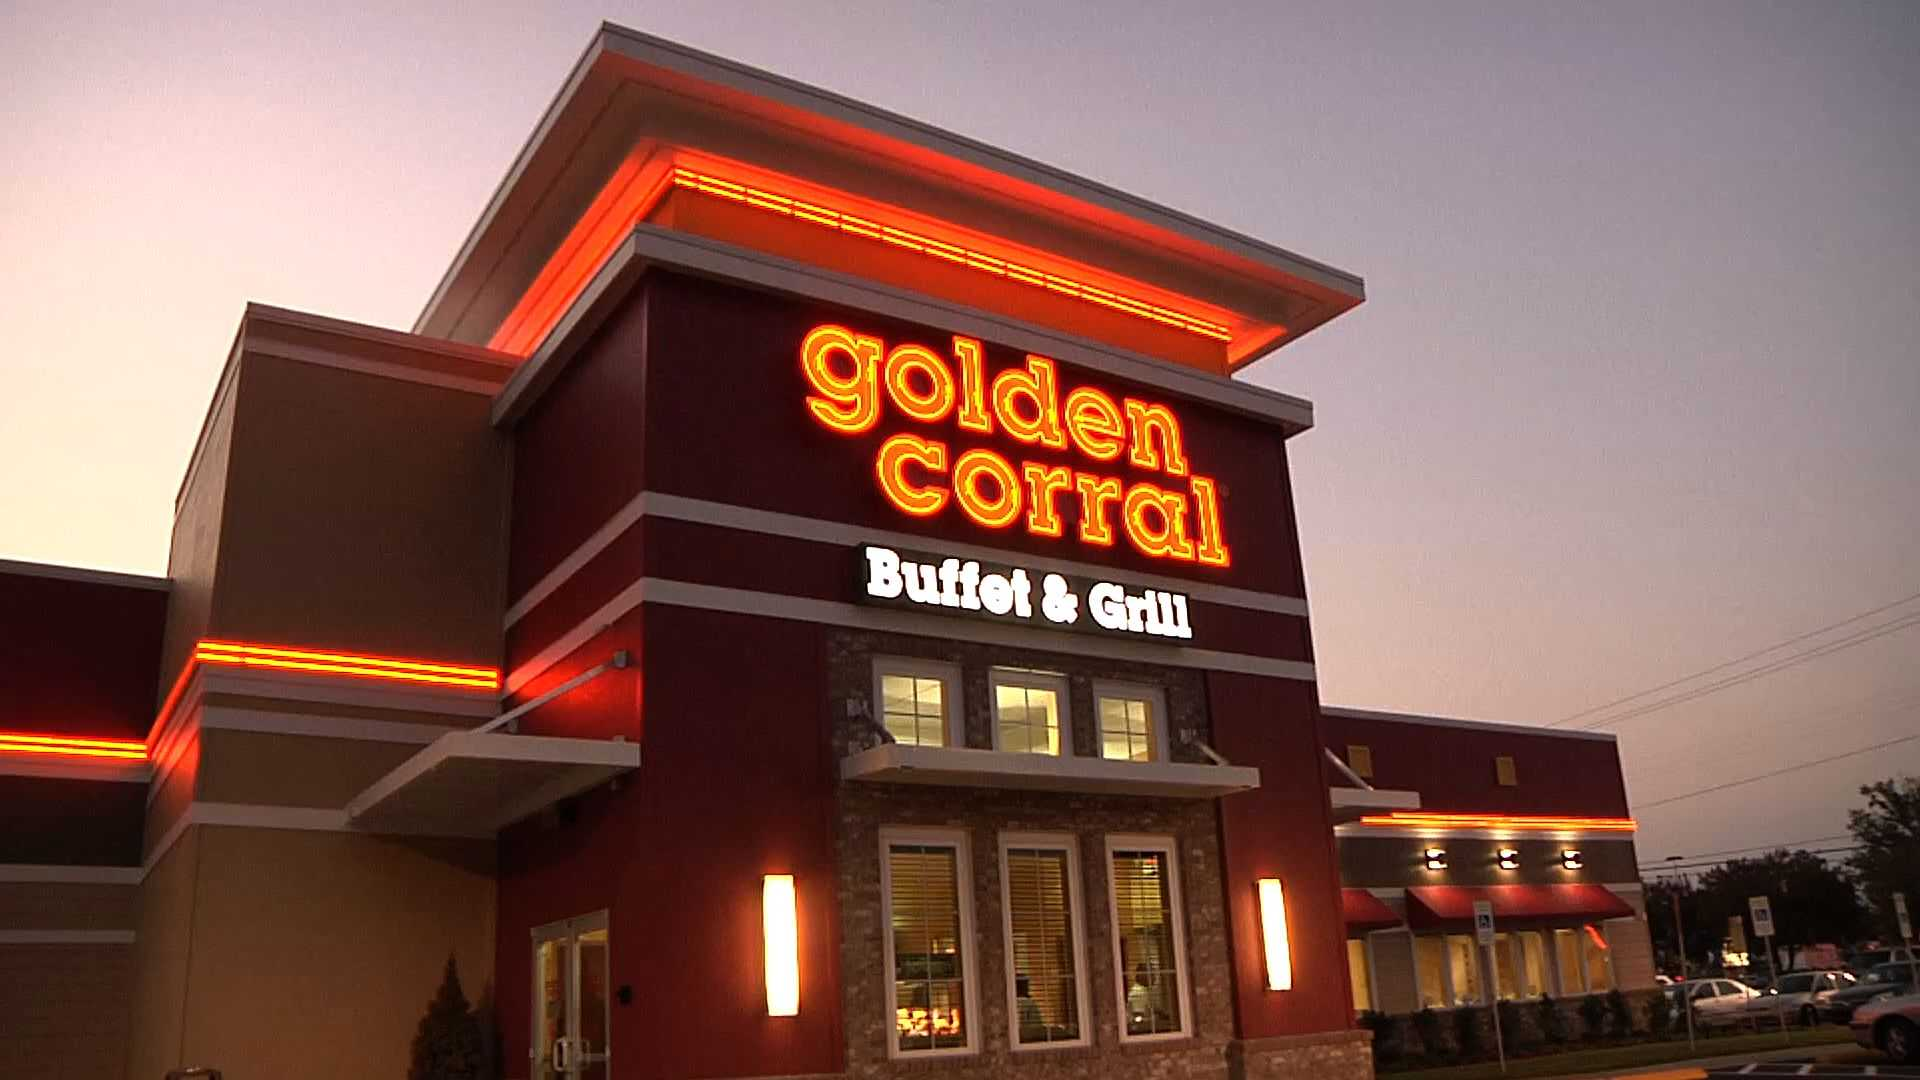 golden corral hours, golden corral breakfast hours